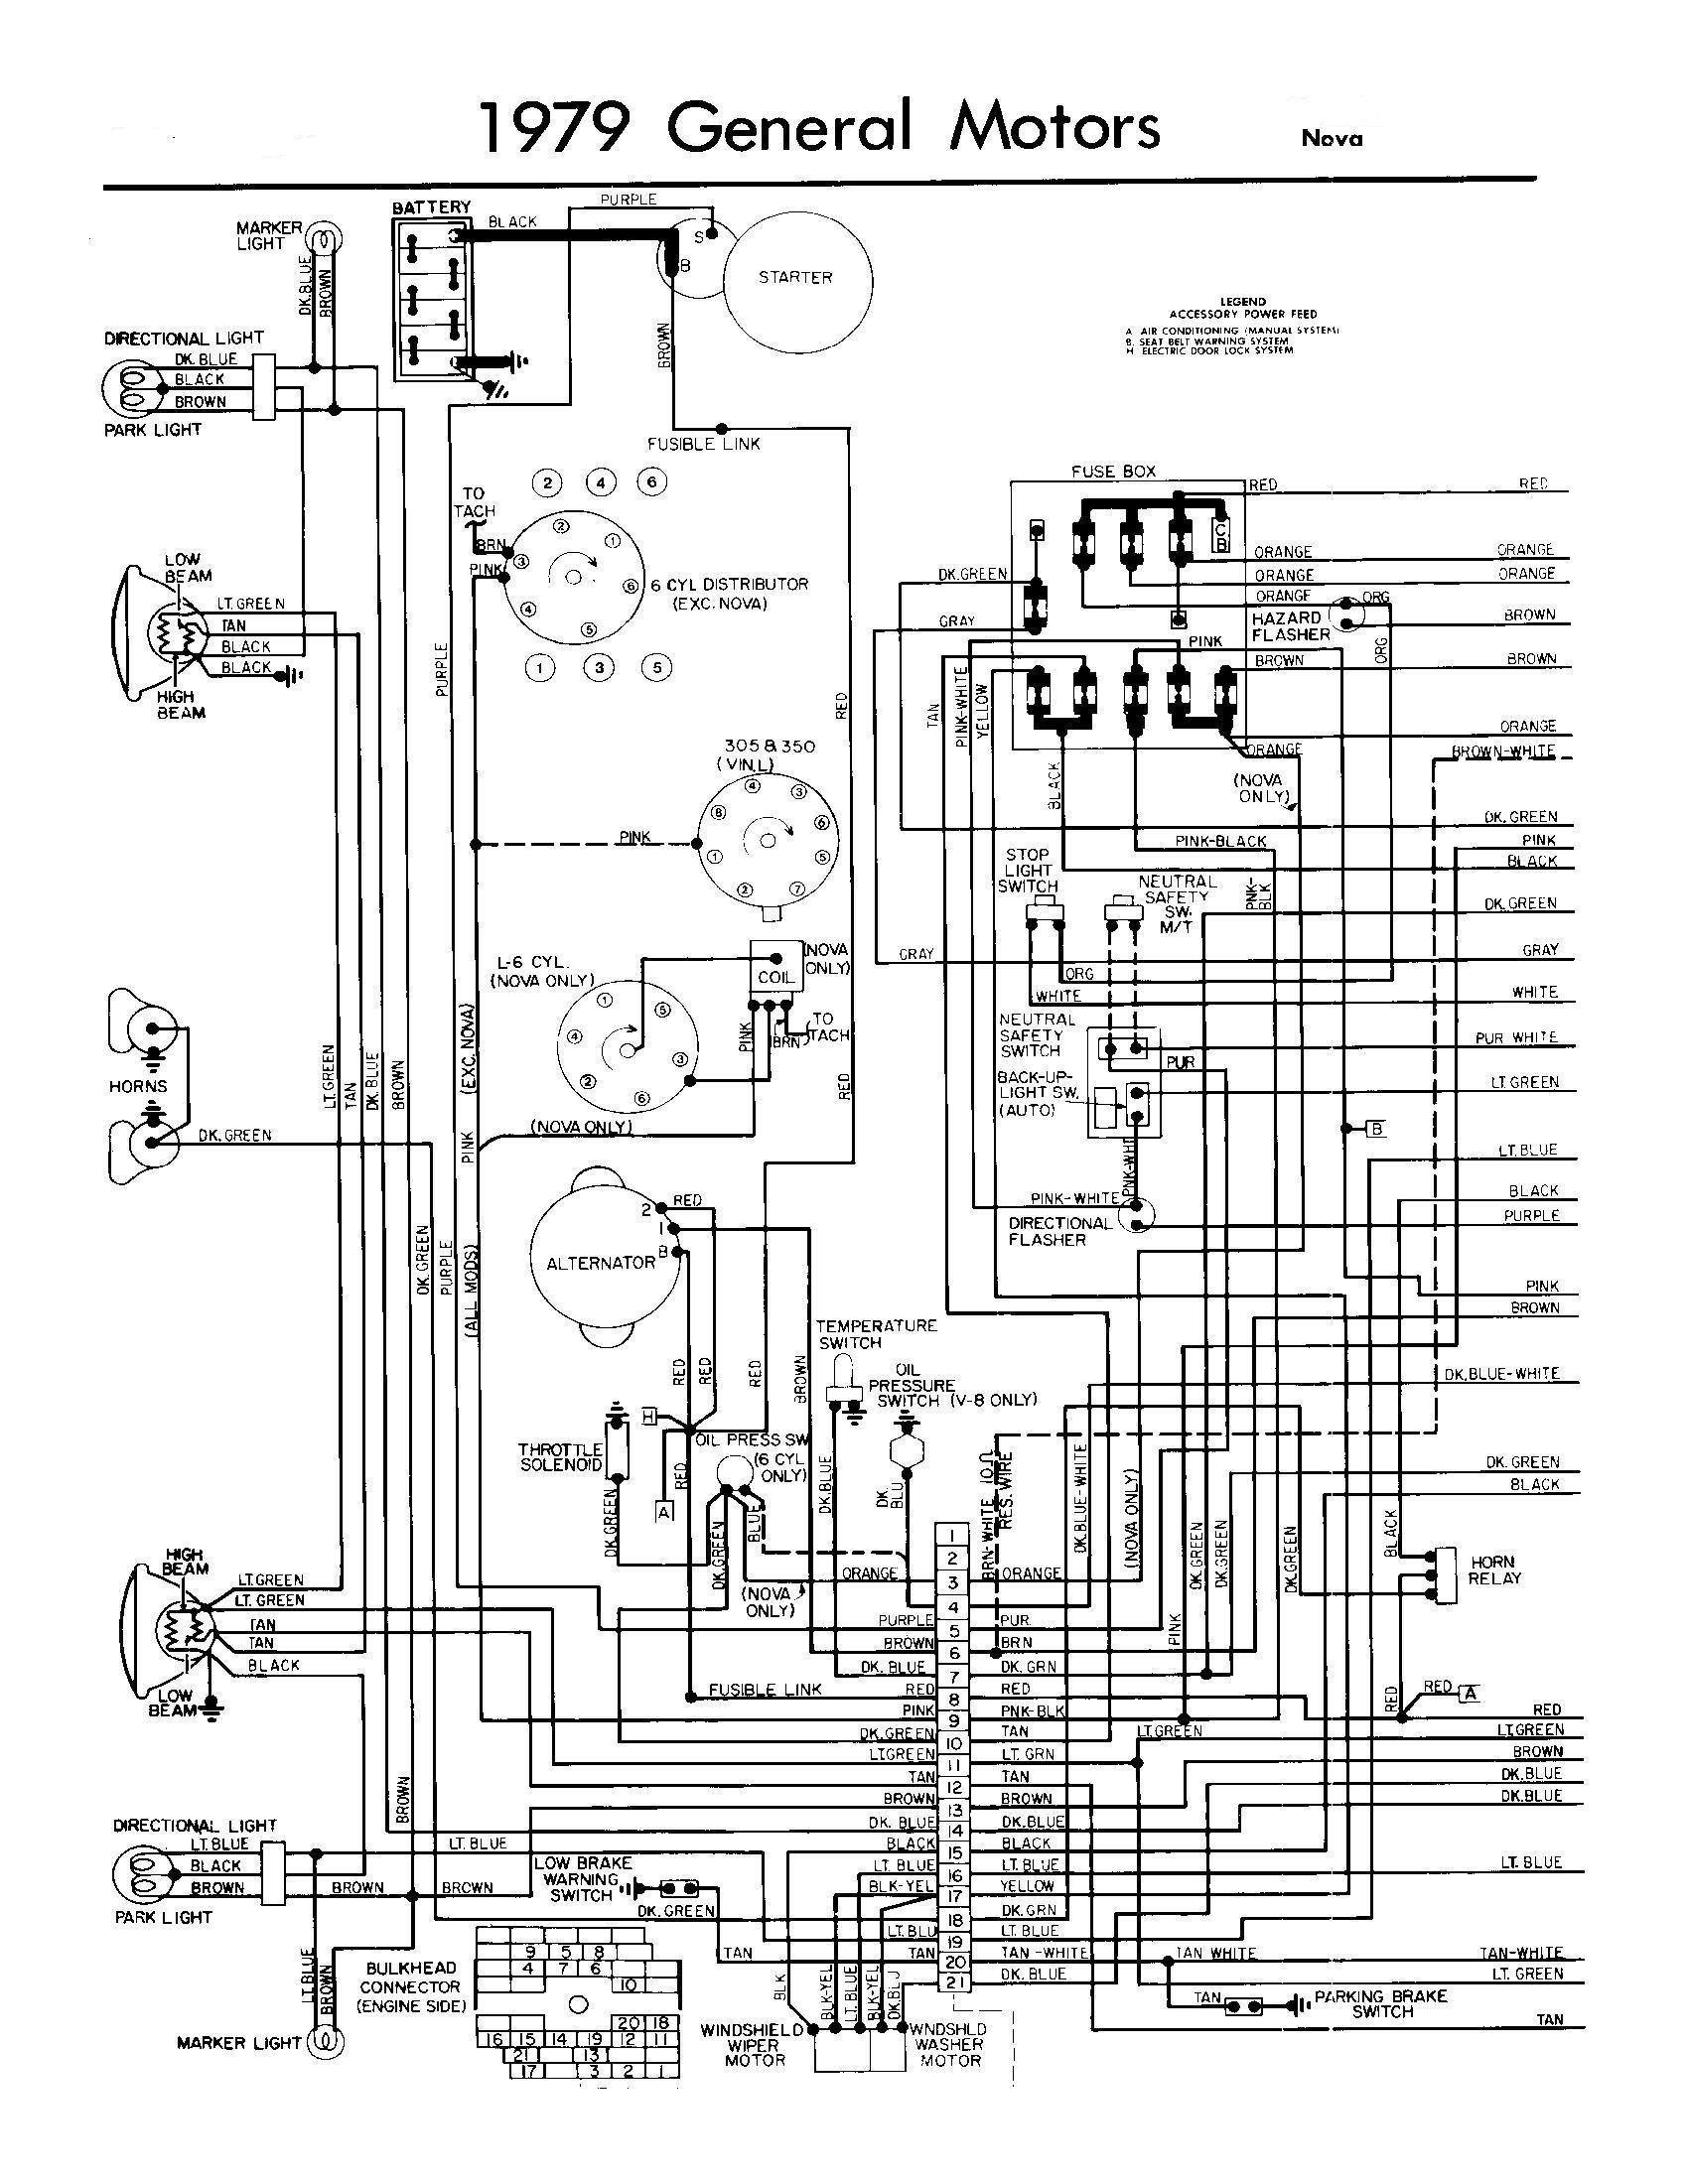 Cx500 E Sports Service Manual Wiring Diagram | Wiring Diagram - International Truck Wiring Diagram Manual